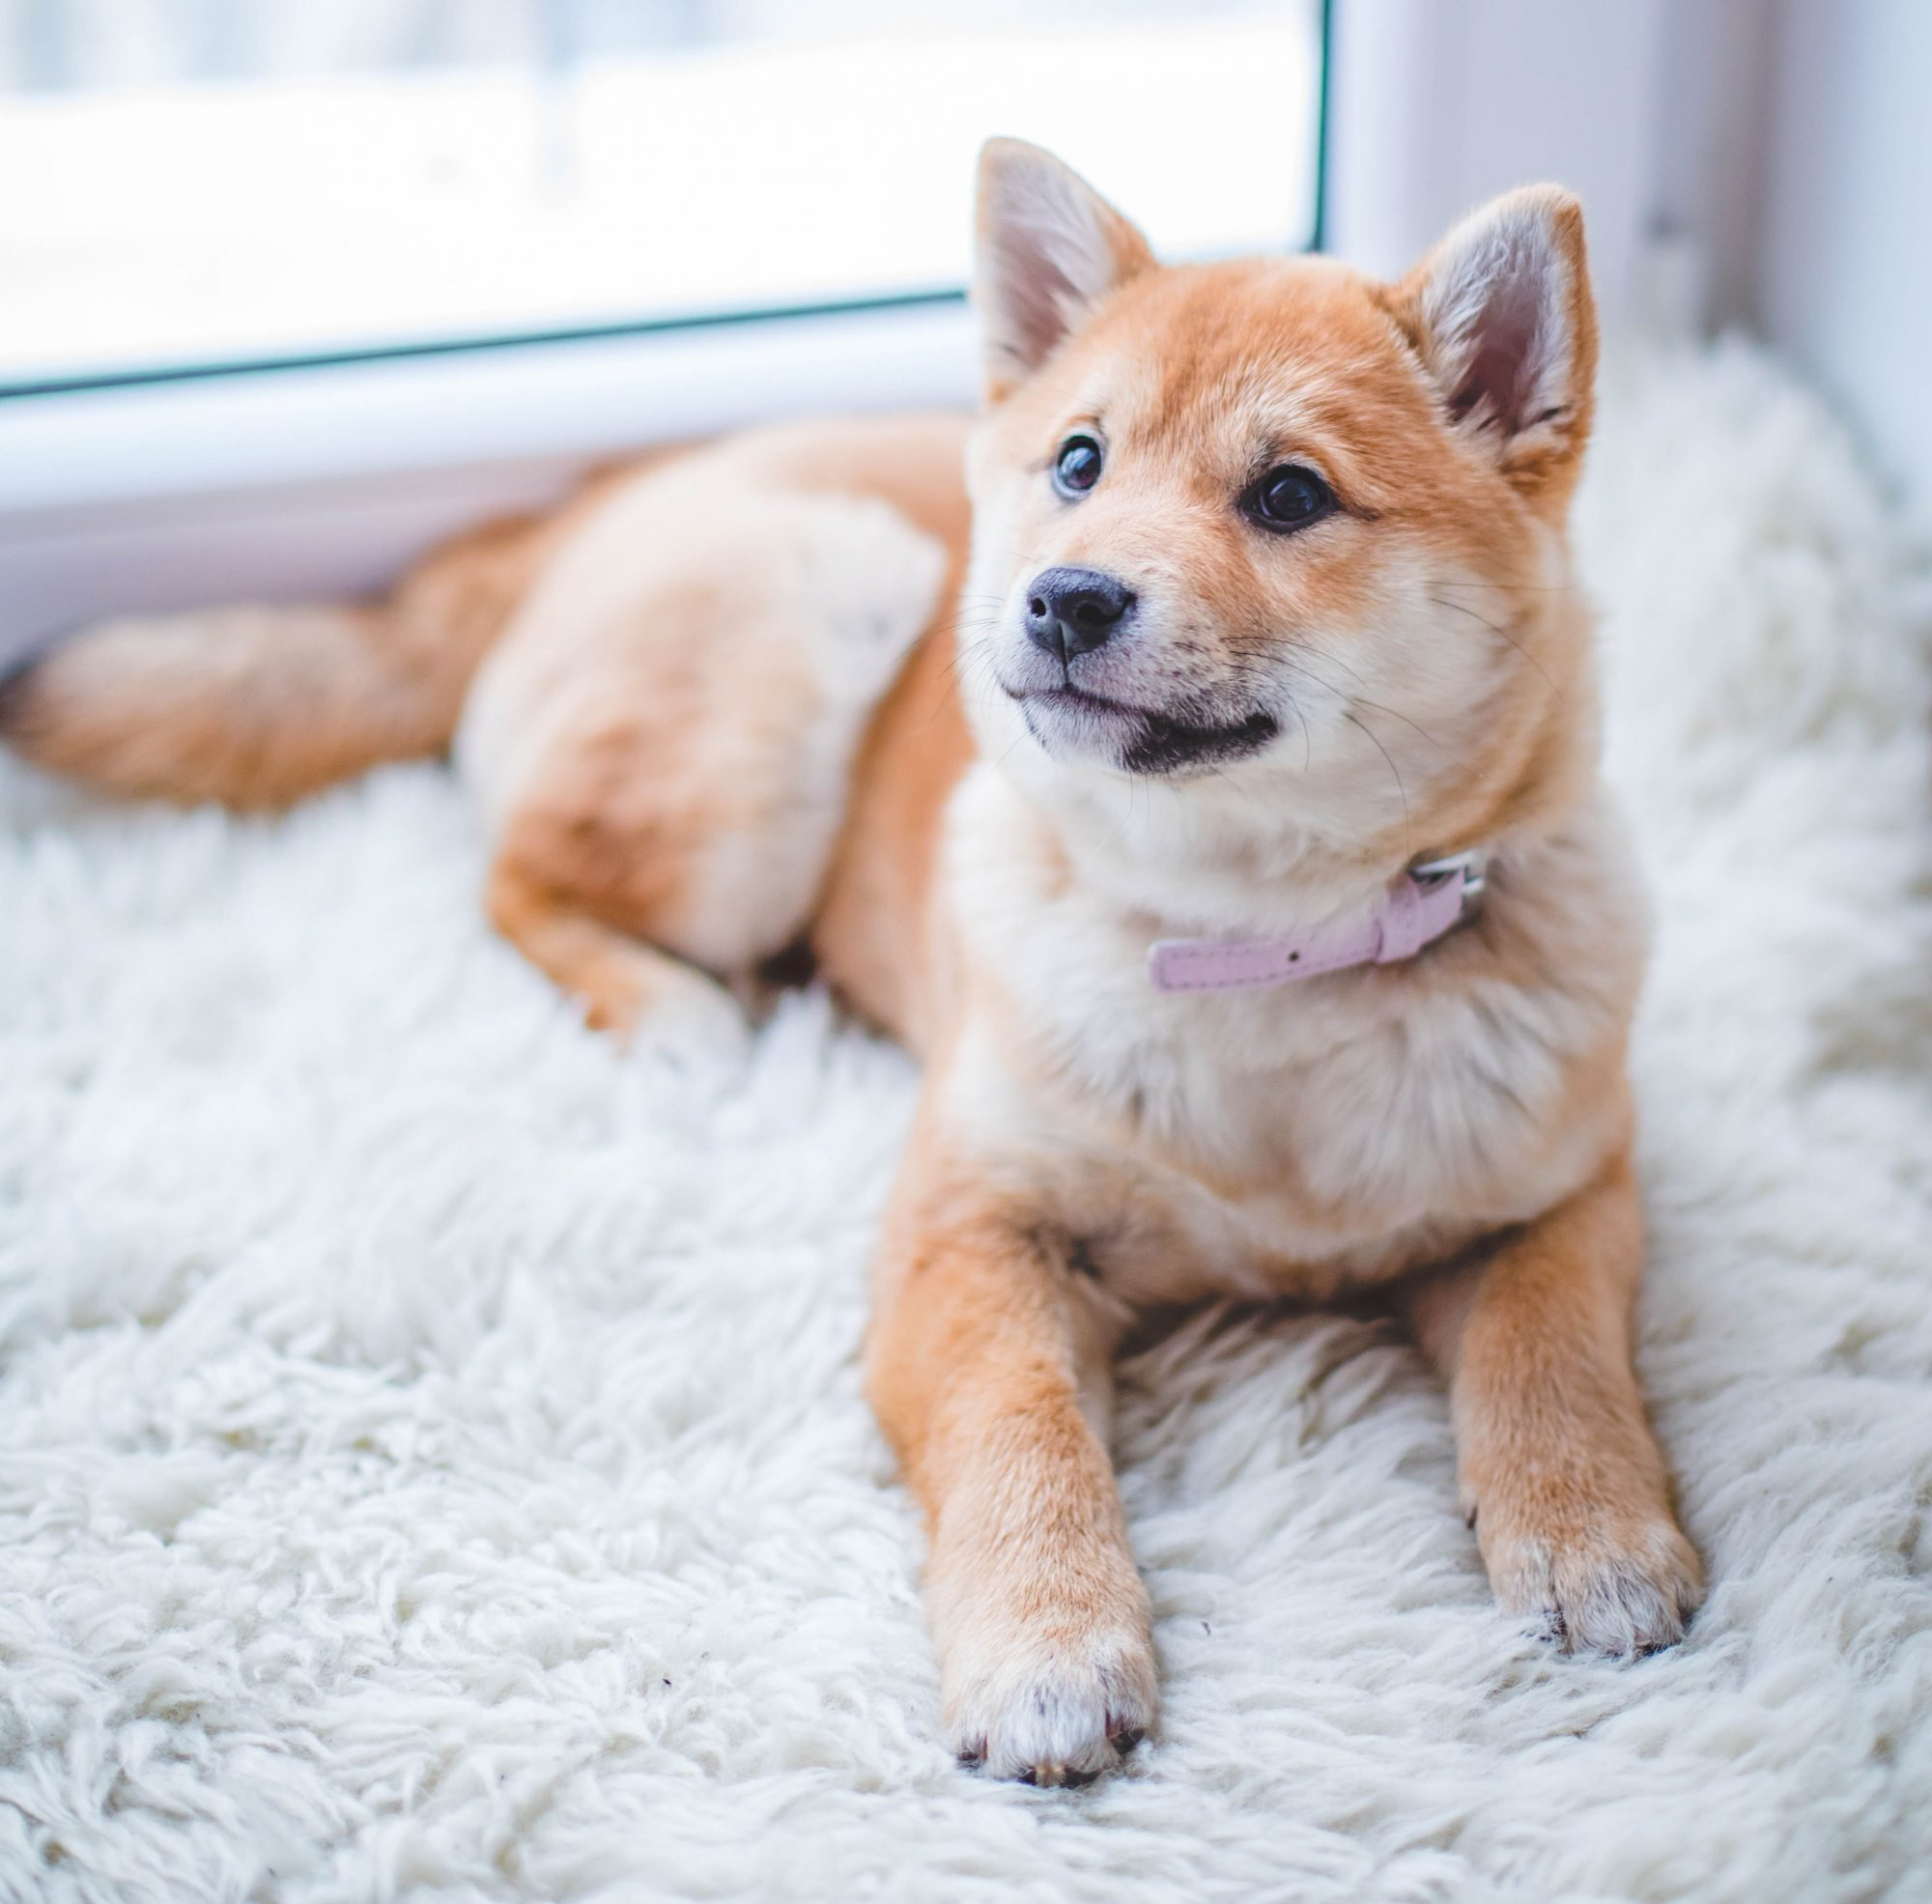 cute dog on fluffy carpet